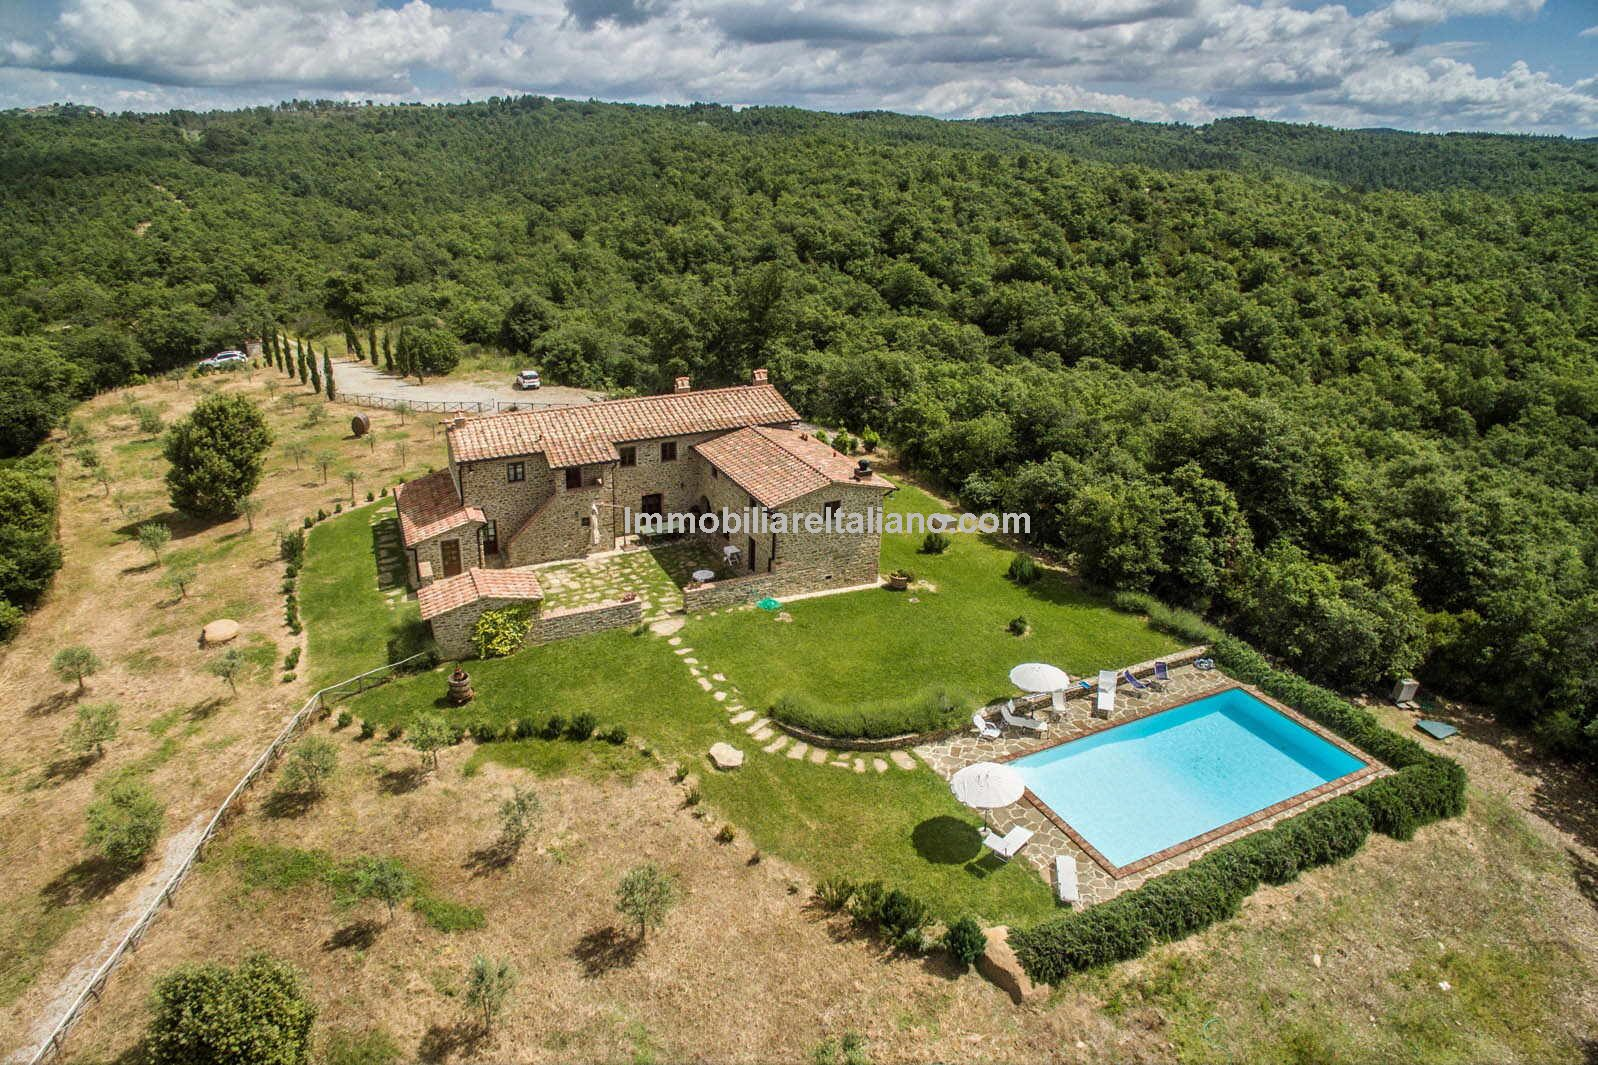 Farmhouse in Tuscany with courtyard, pool, woodland and olive grove